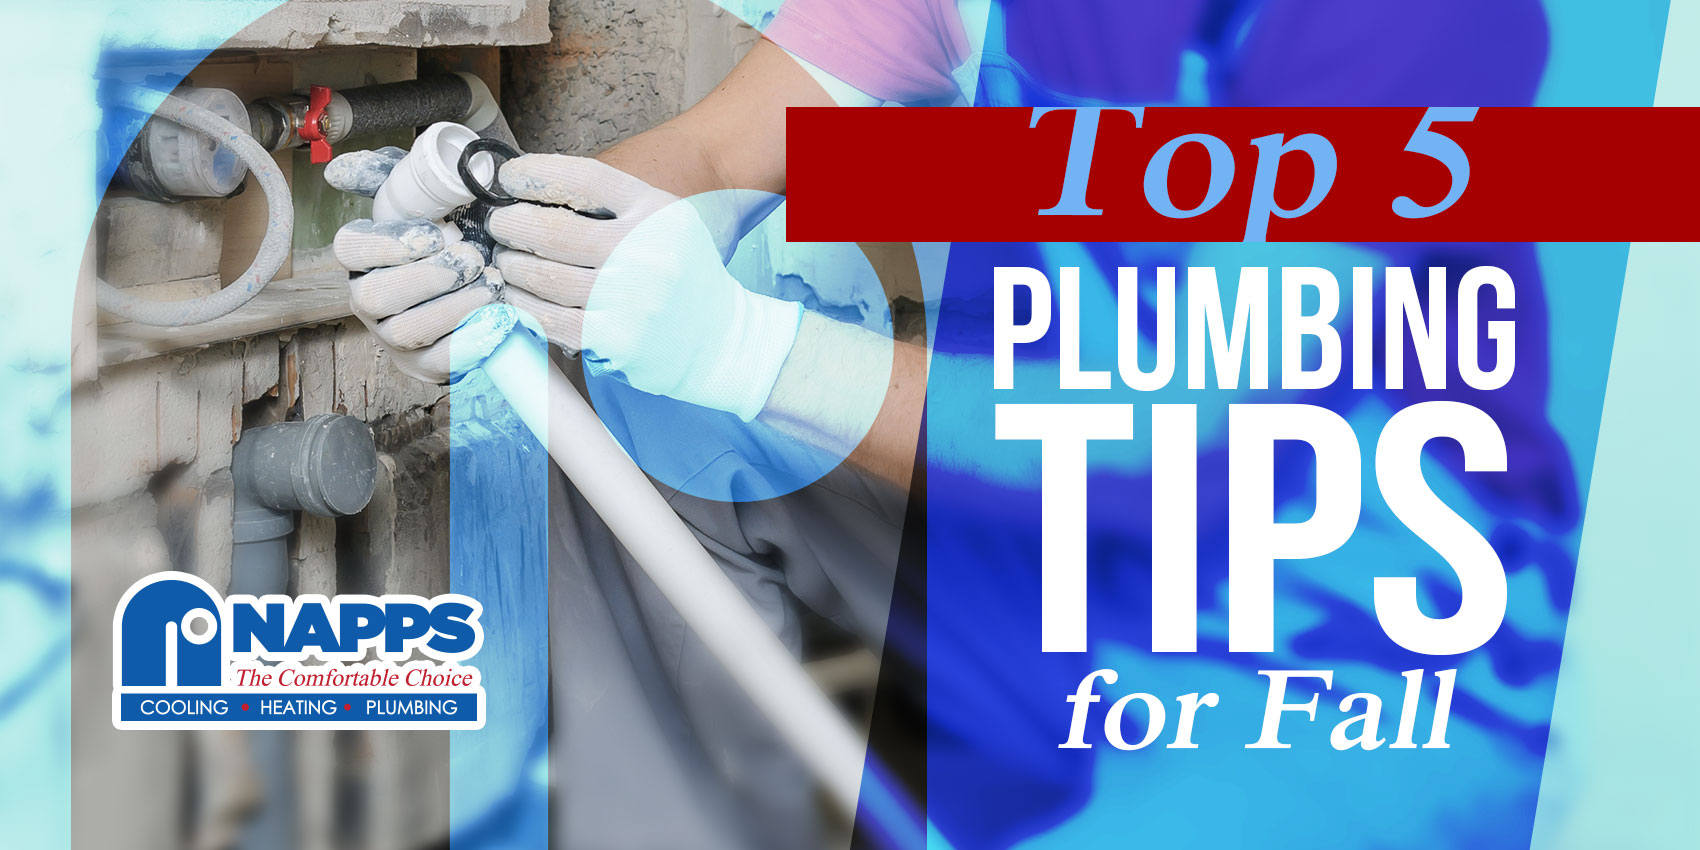 Top 5 Plumbing Tips for Fall